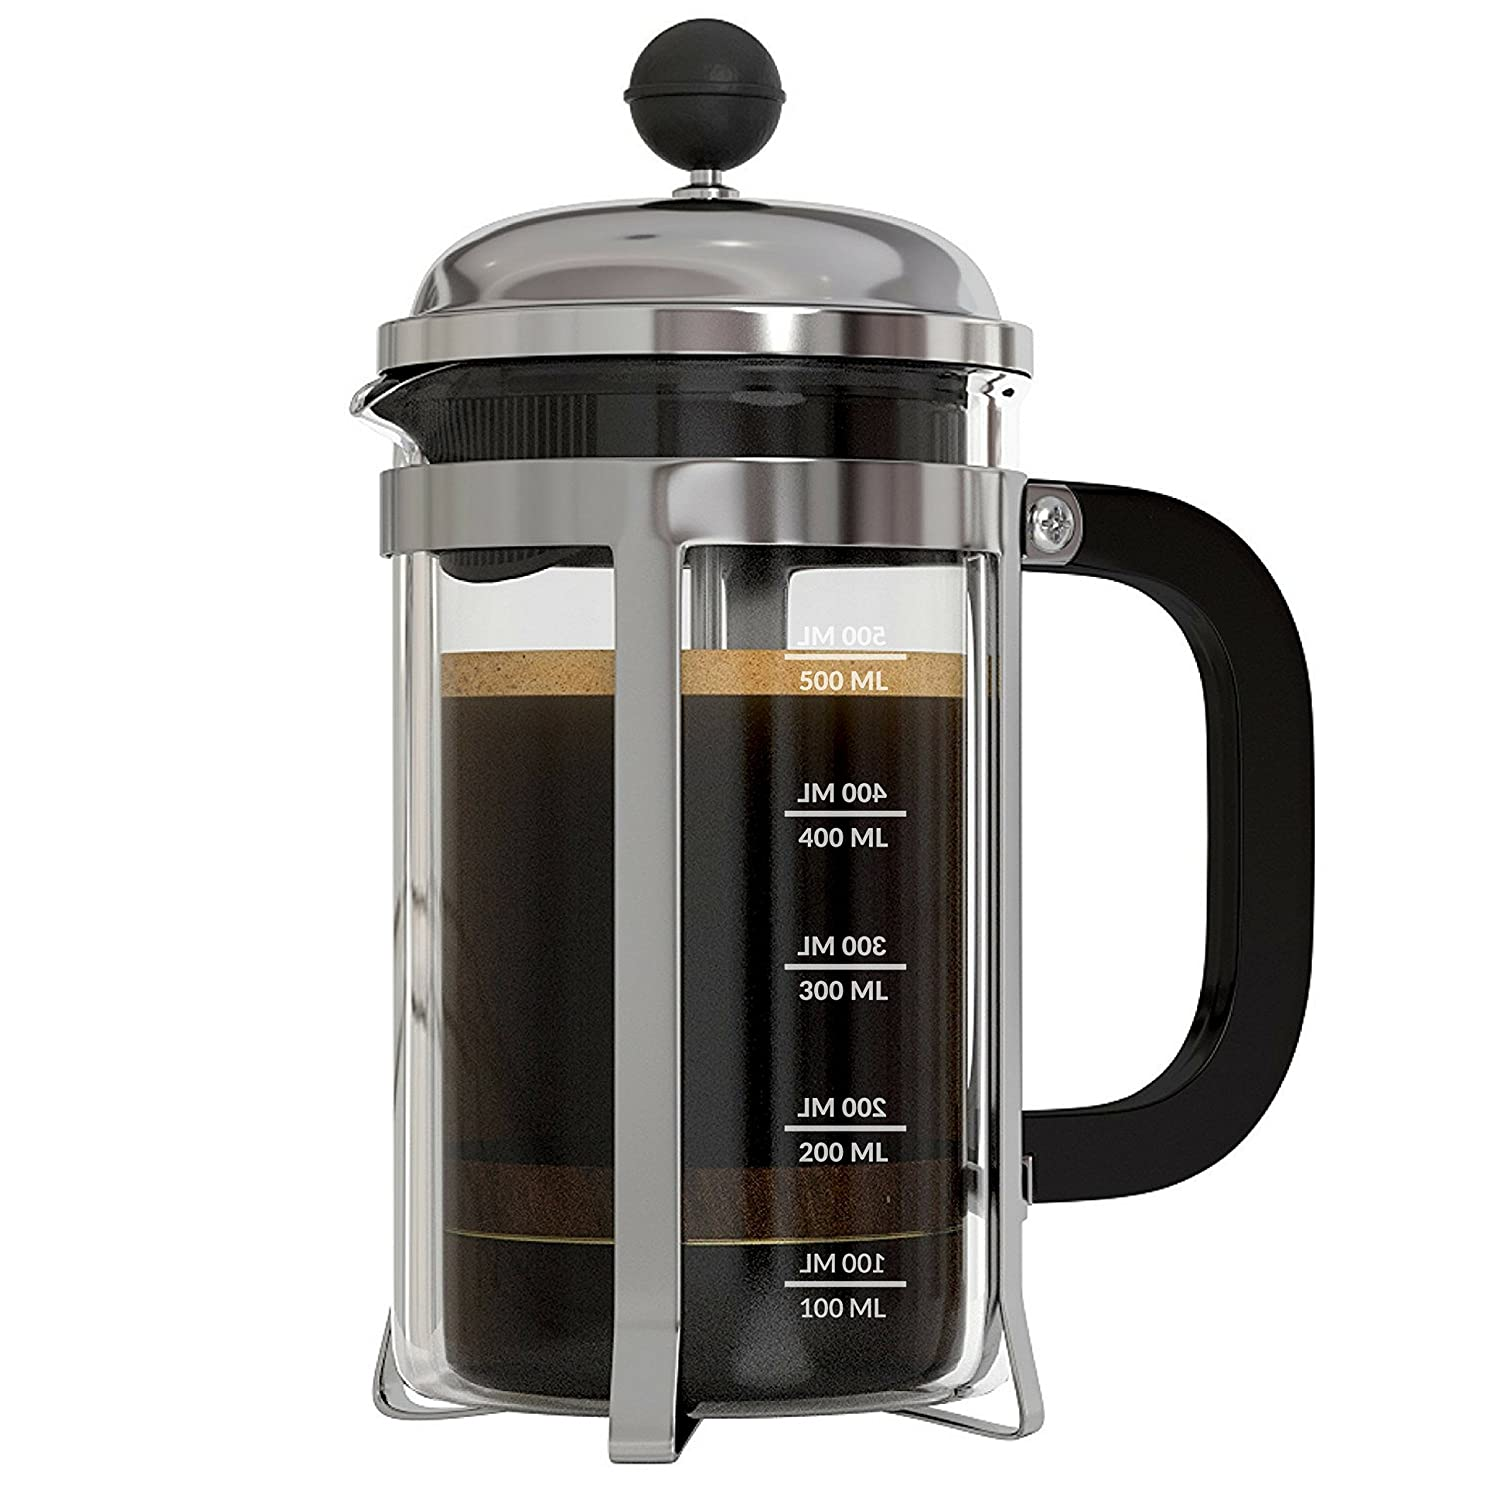 coffee maker coffee machine InstaCuppa French Press Coffee Machine with 4 Part Superior Filtration 600 ML, Stainless Steel.